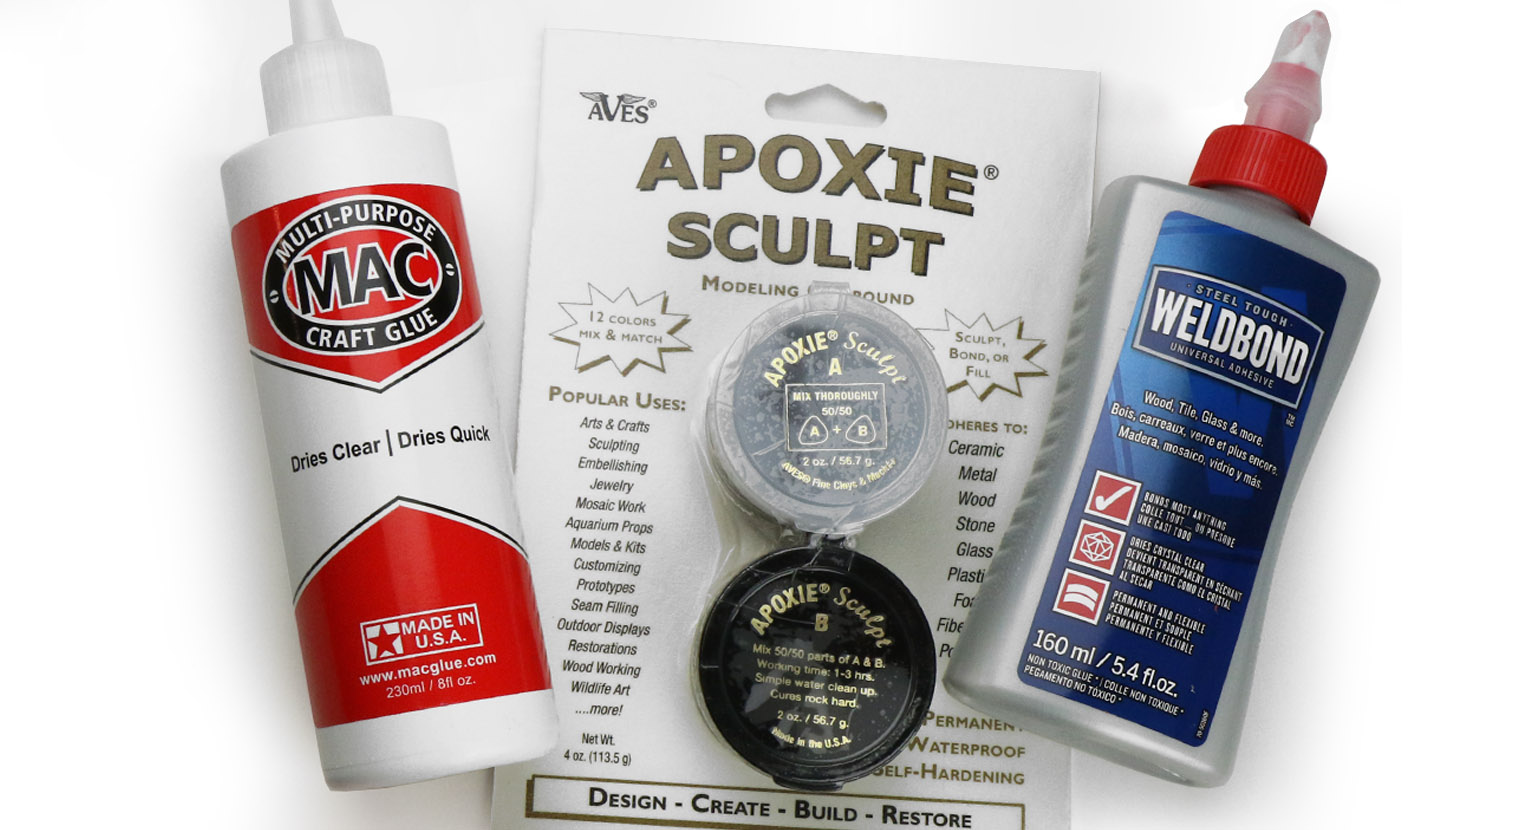 Adhesives & More